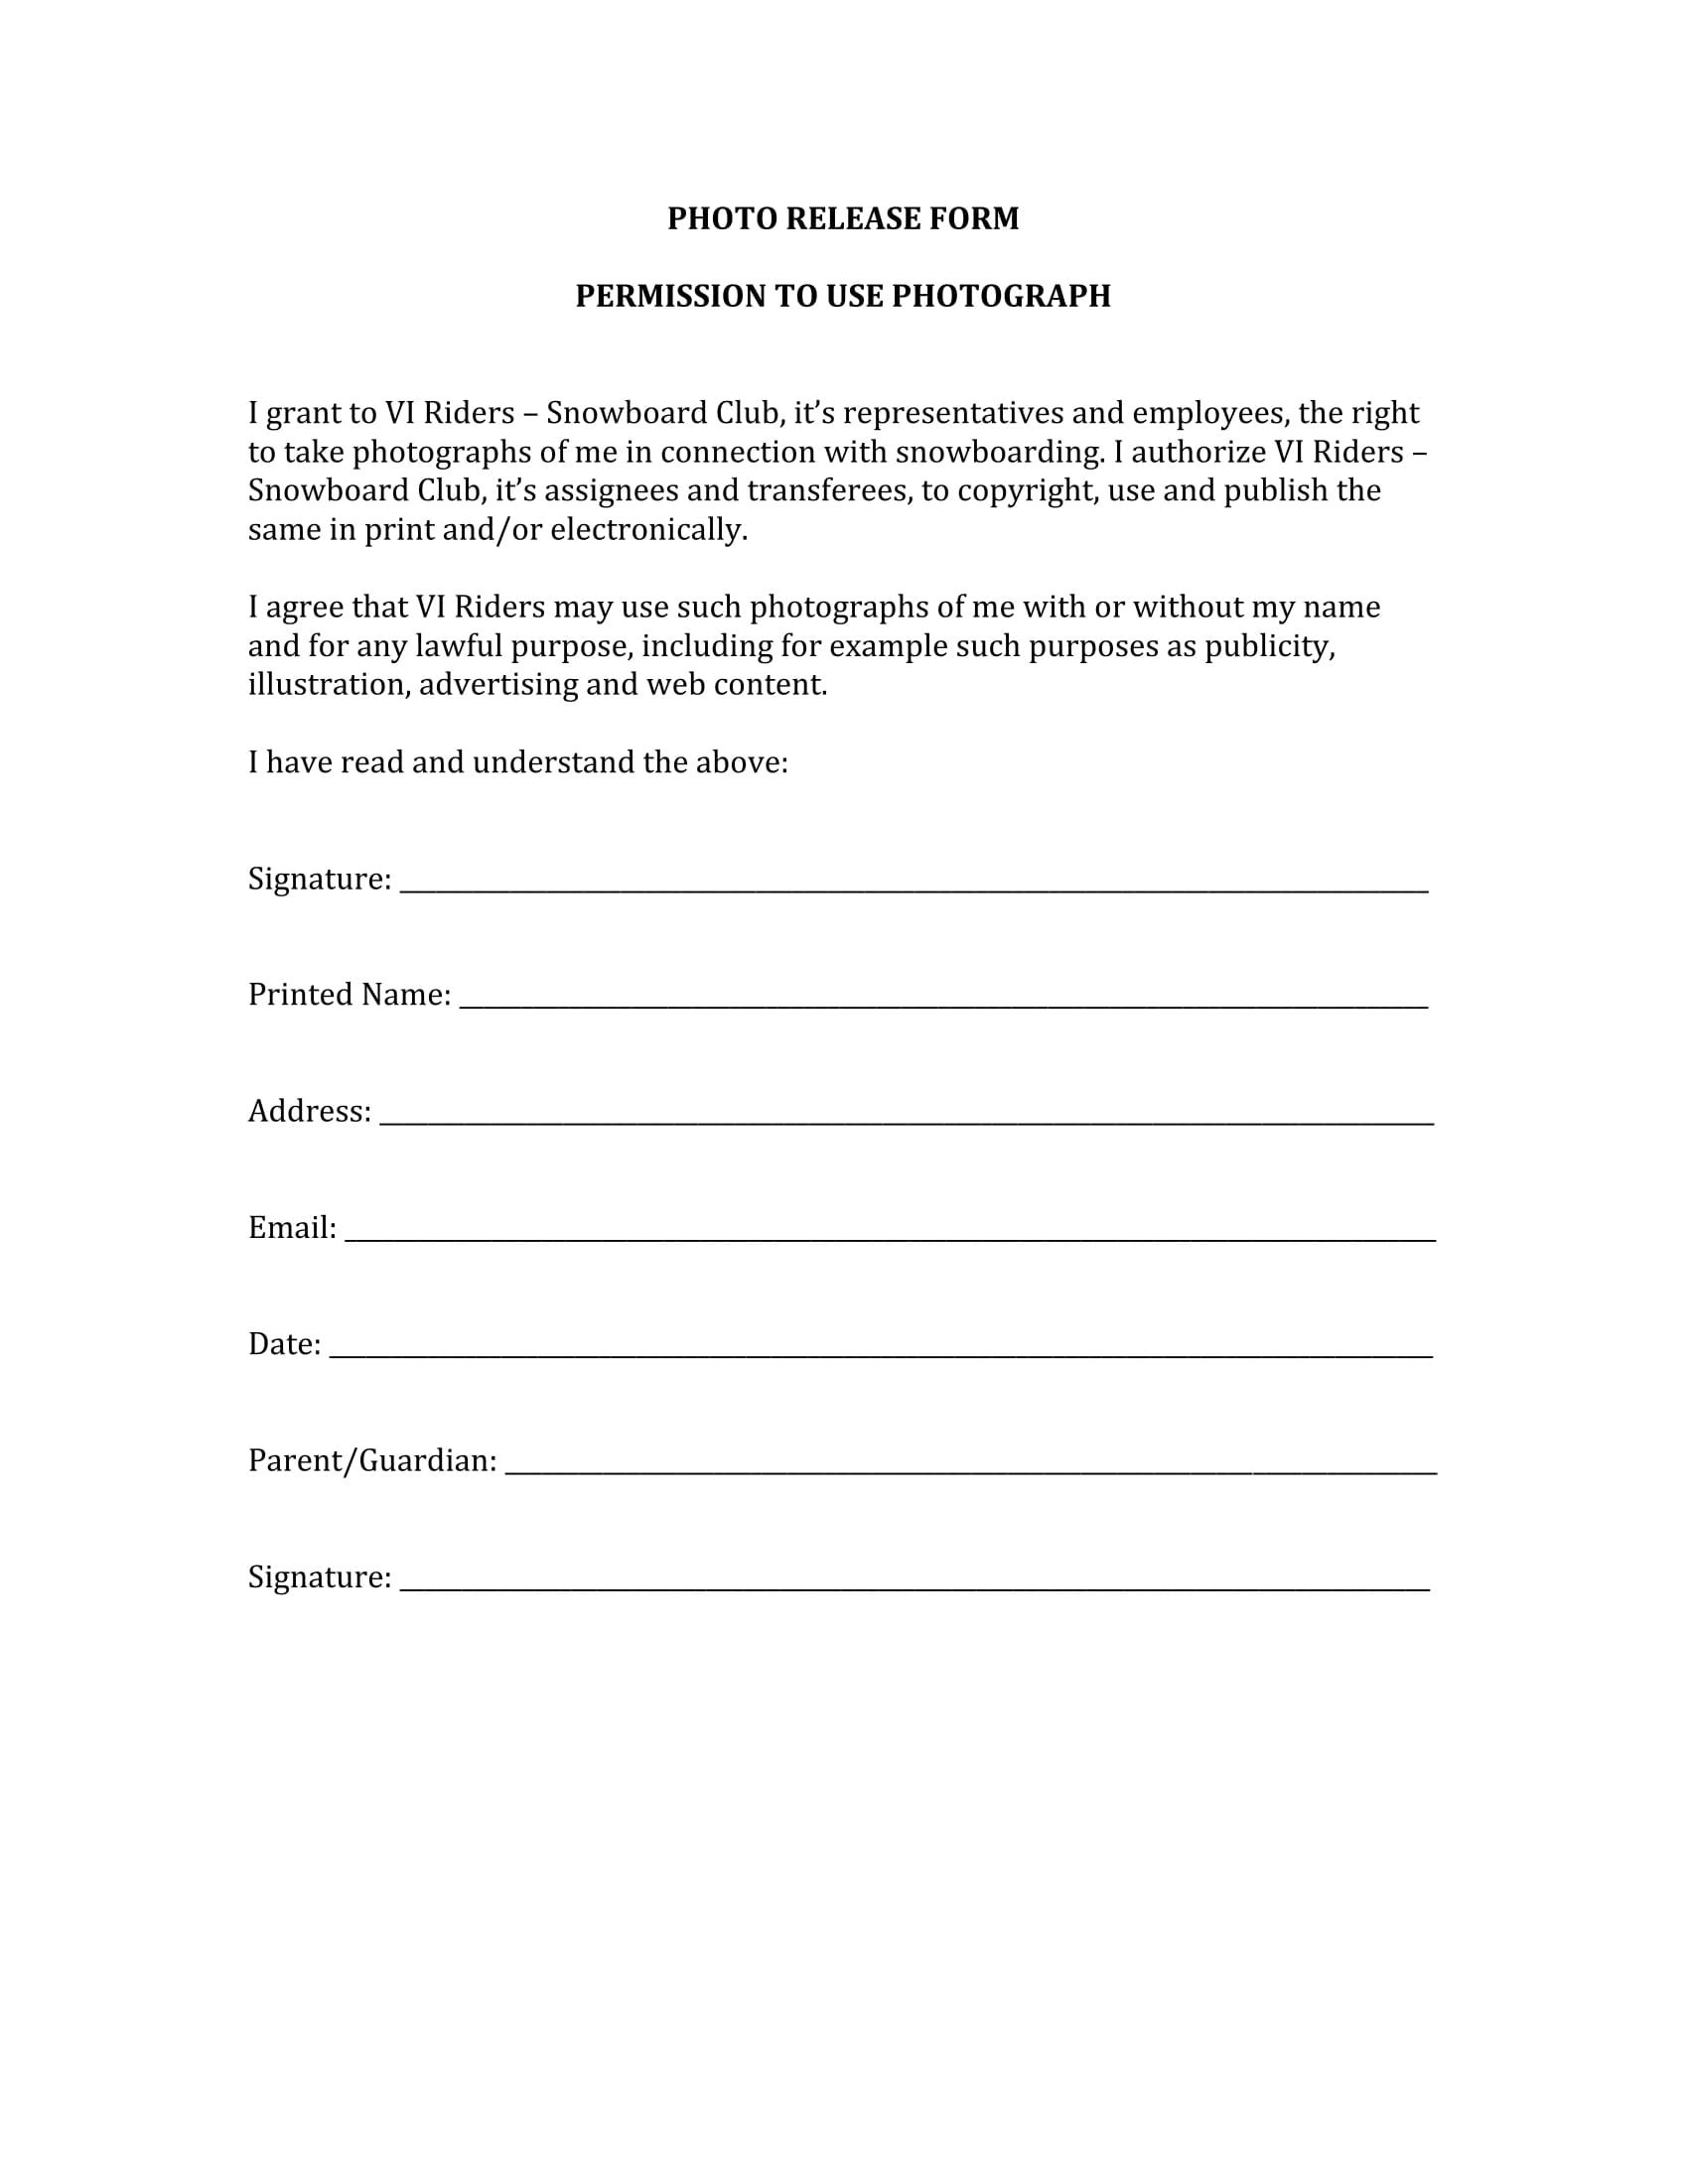 use of image release form